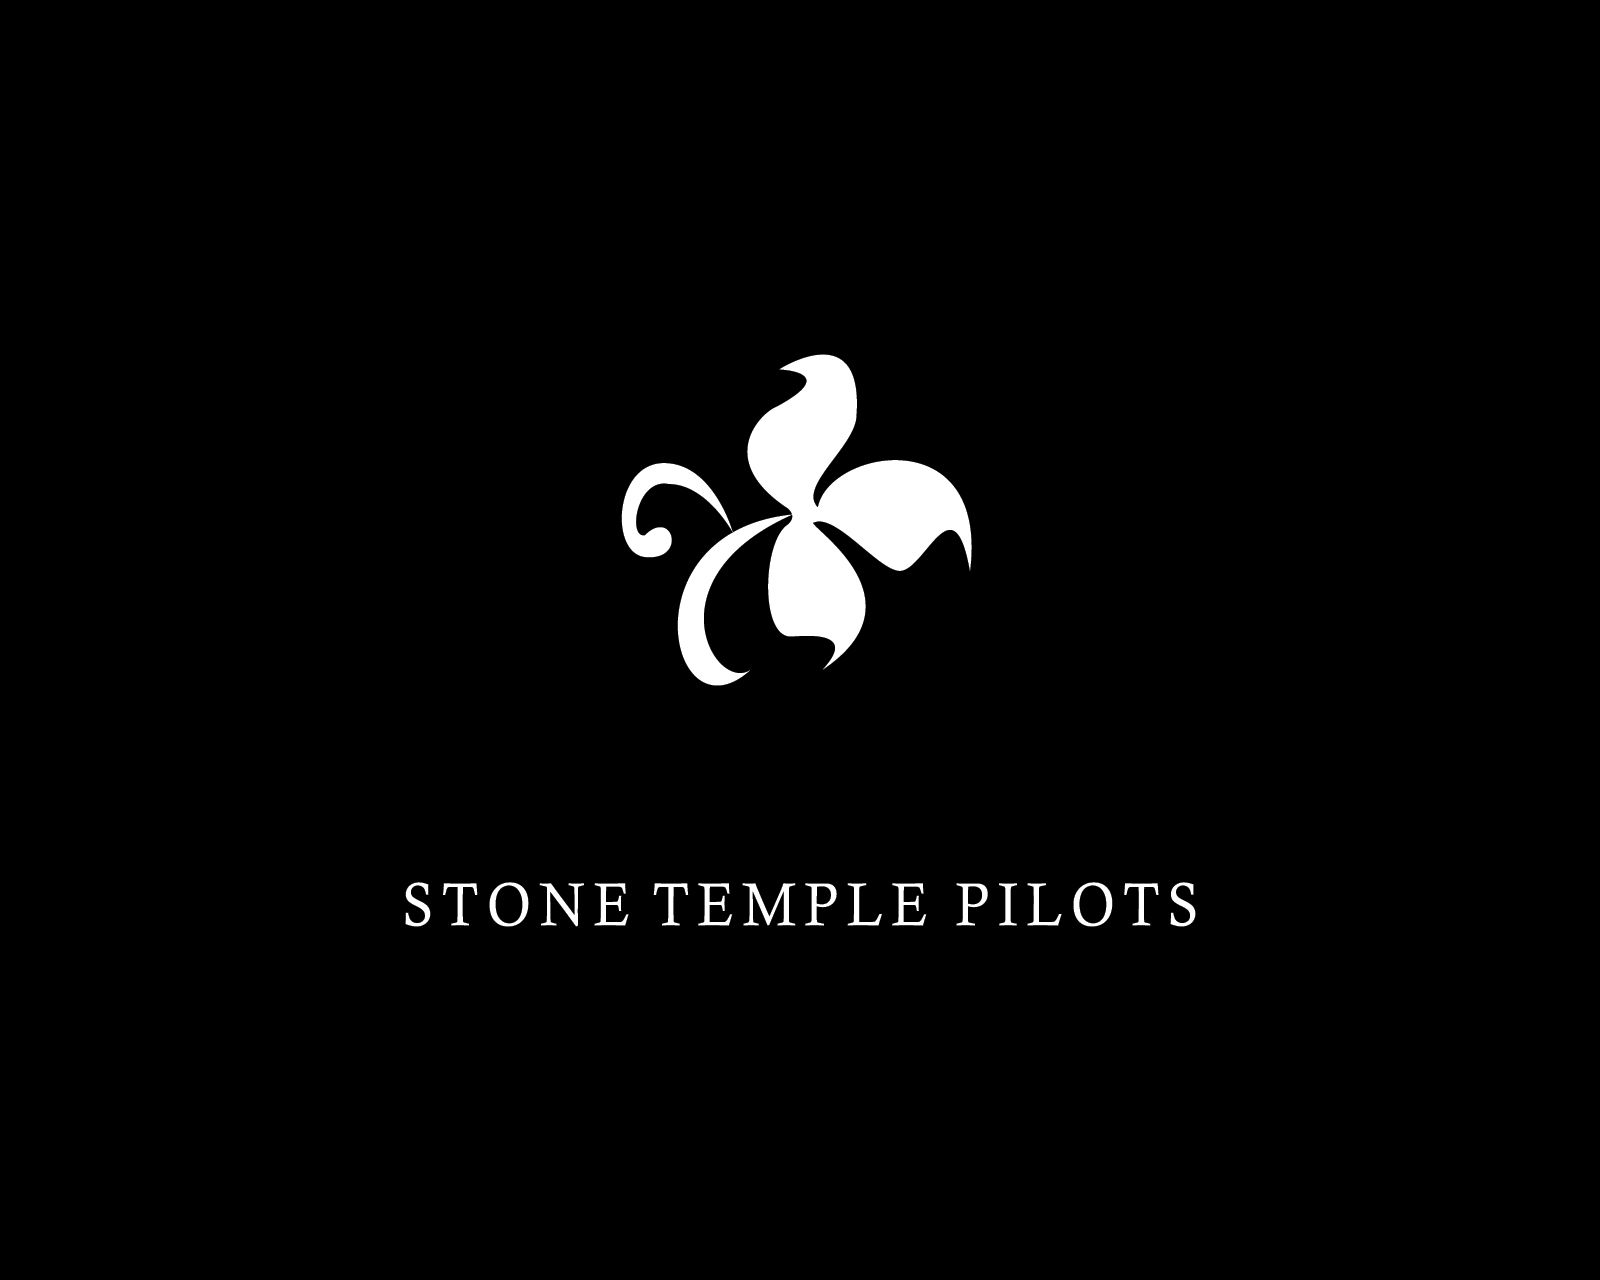 3 Stone Temple Pilots HD Wallpapers | Backgrounds - Wallpaper Abyss